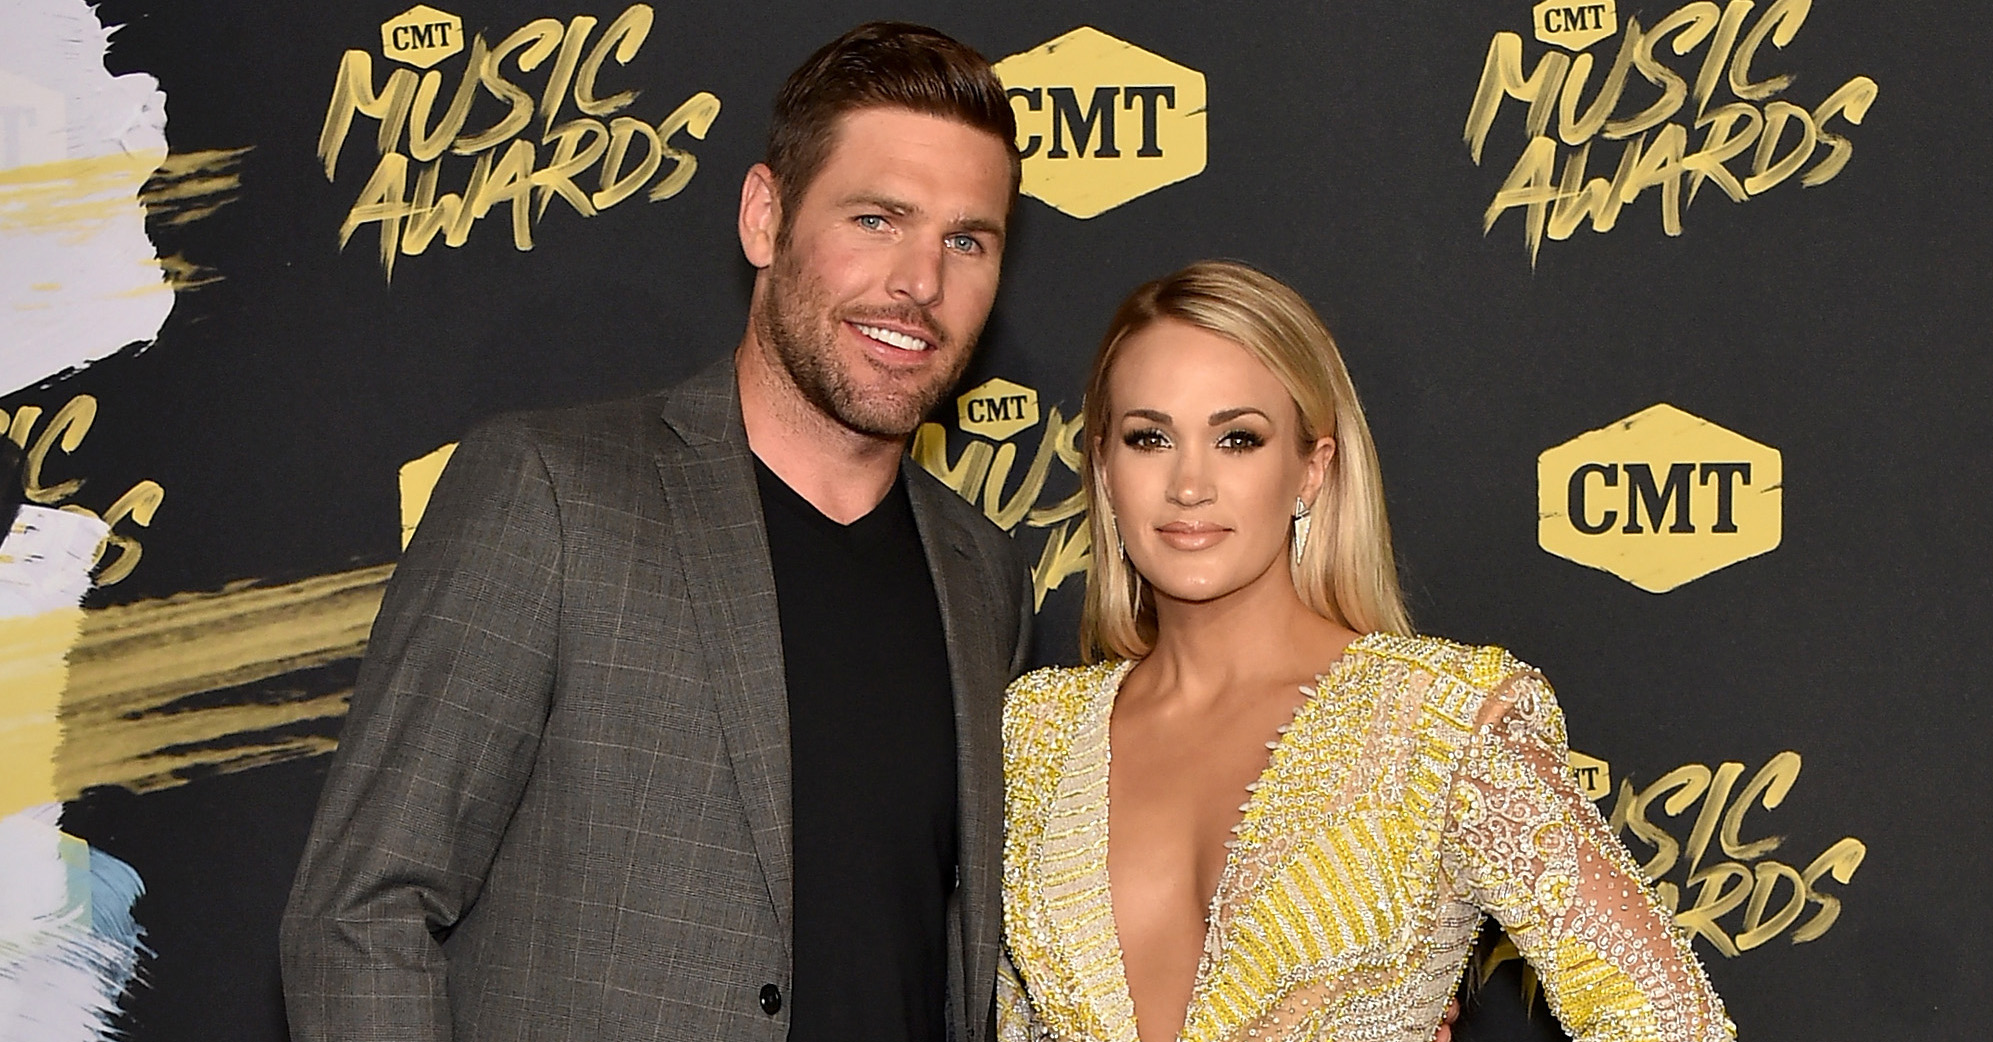 Carrie-Underwood-Celebrates-8-Years-Of-Marriage-To-Mike-Fisher-I-Love-You-Today-More-Than-Yesterday